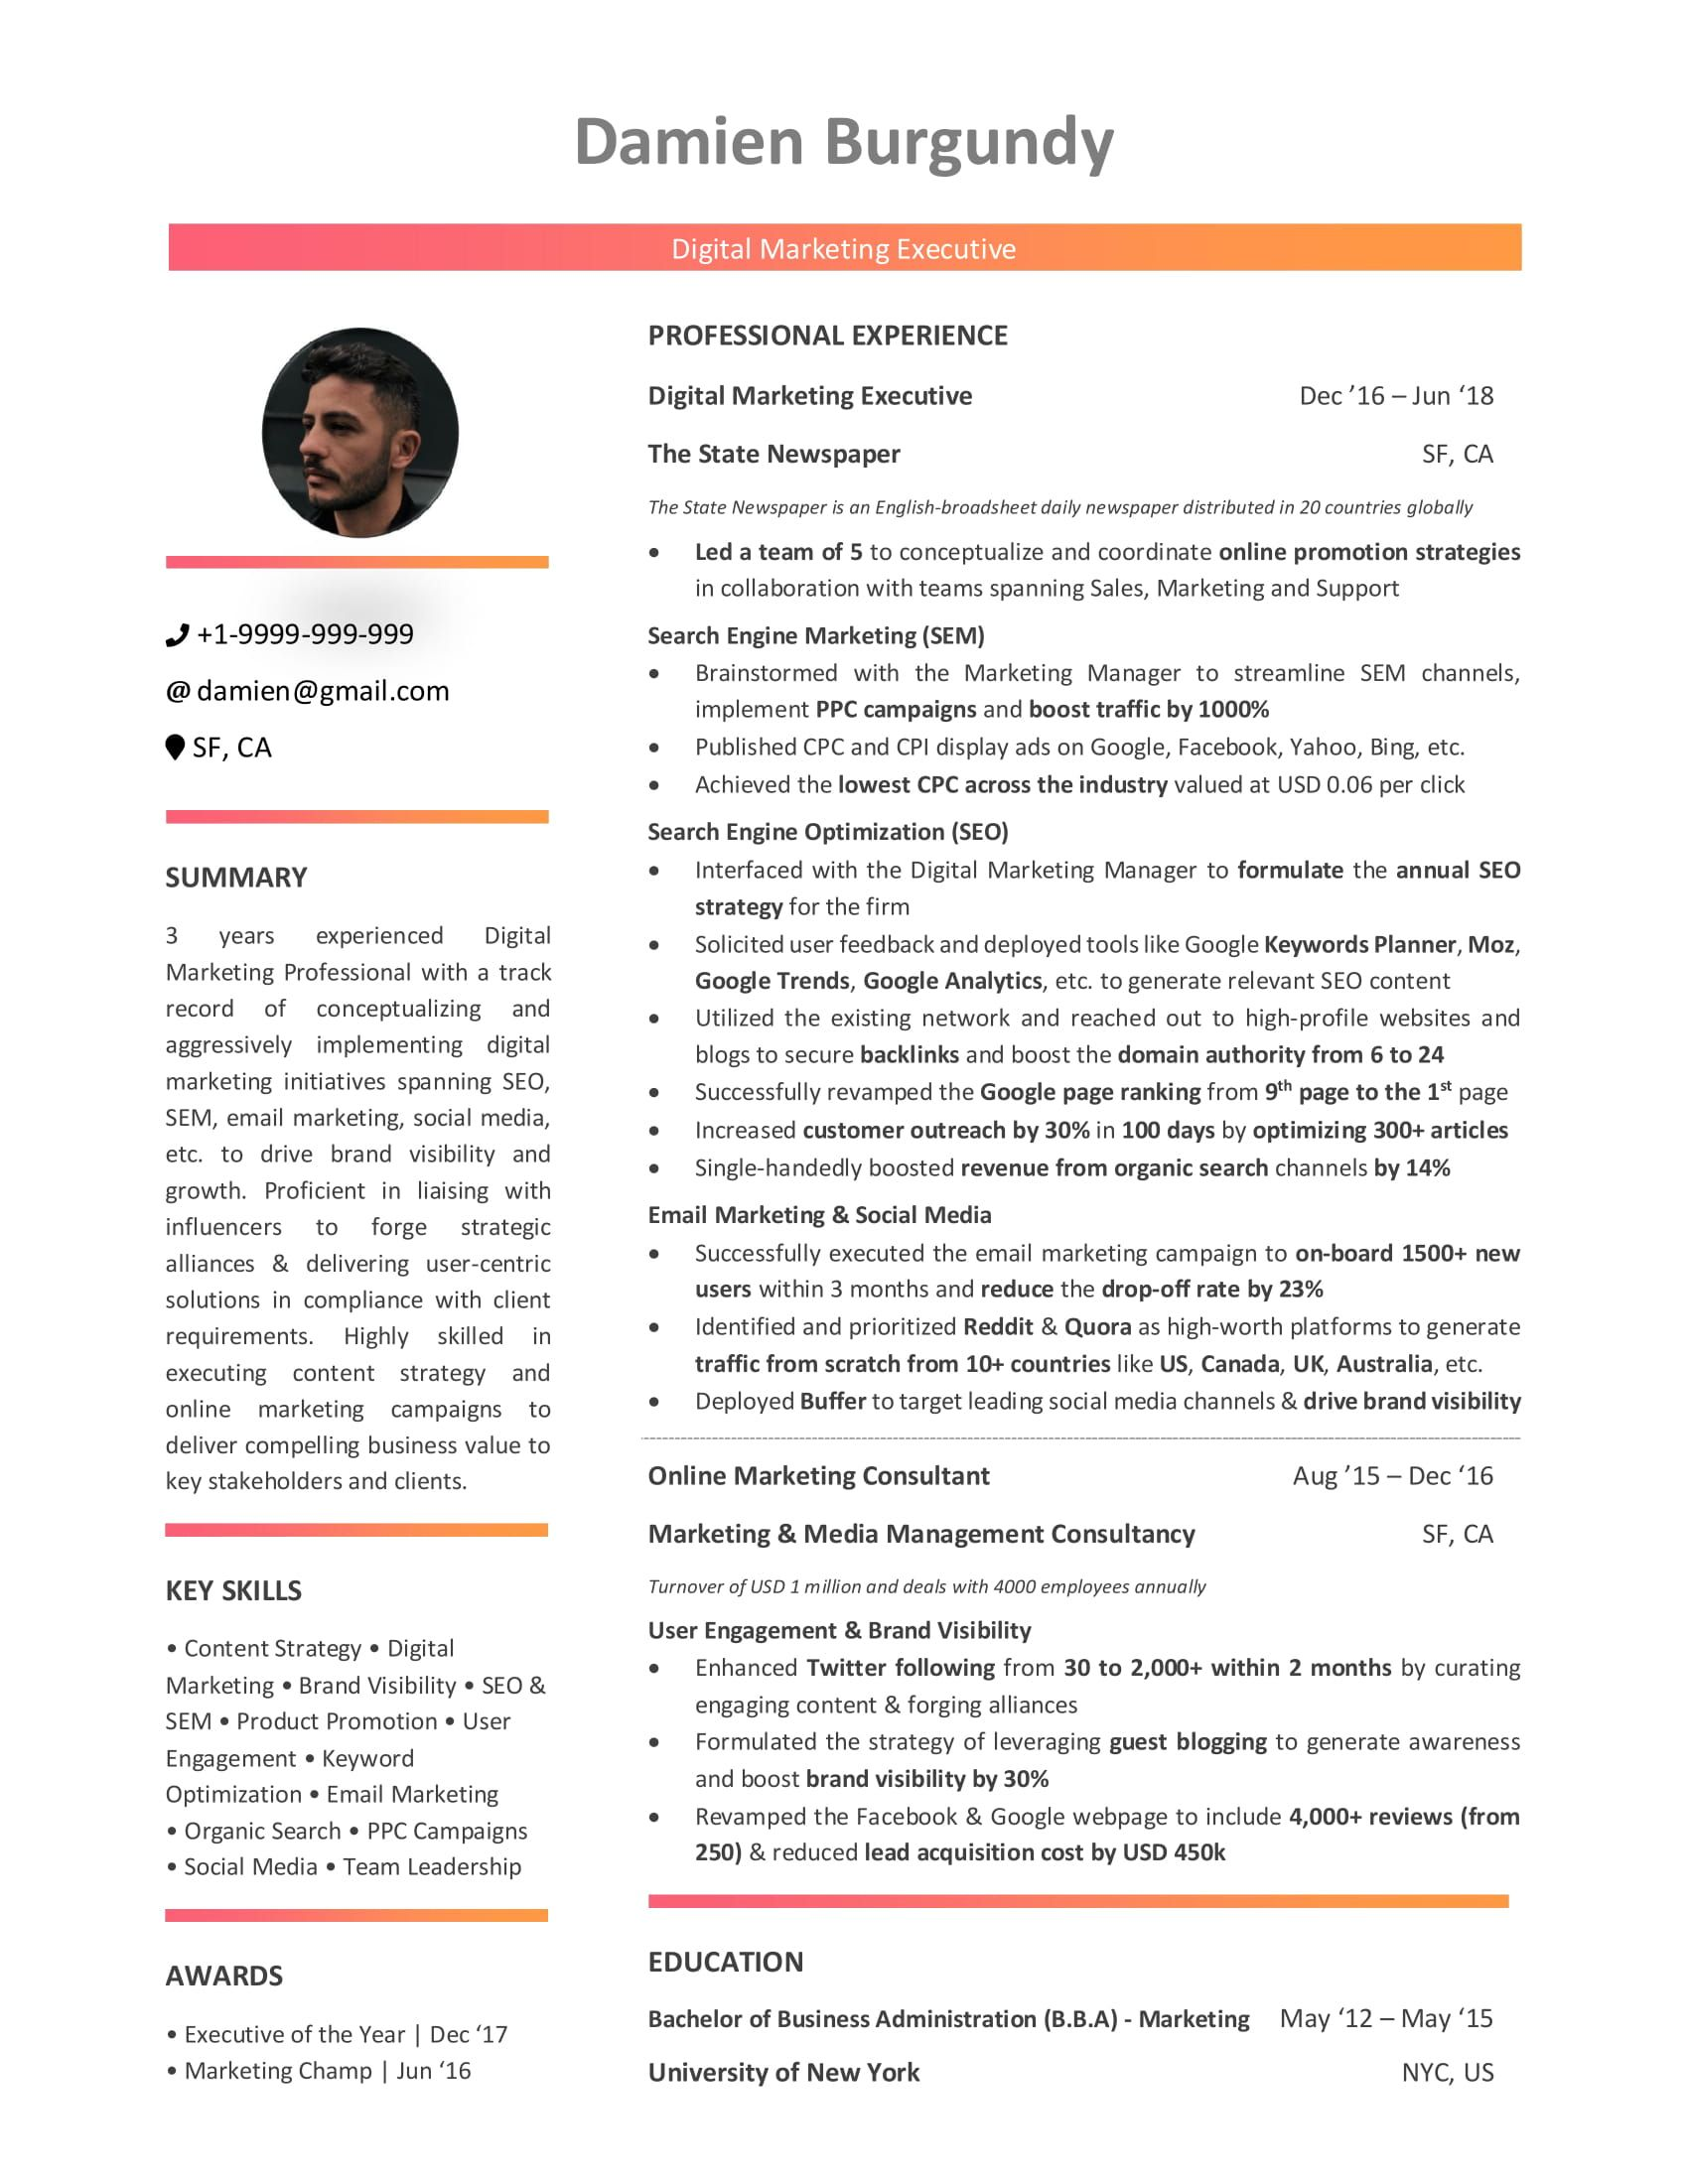 digital marketing resume guide with samples and examples template for awards honors Resume Resume Template For Digital Marketing